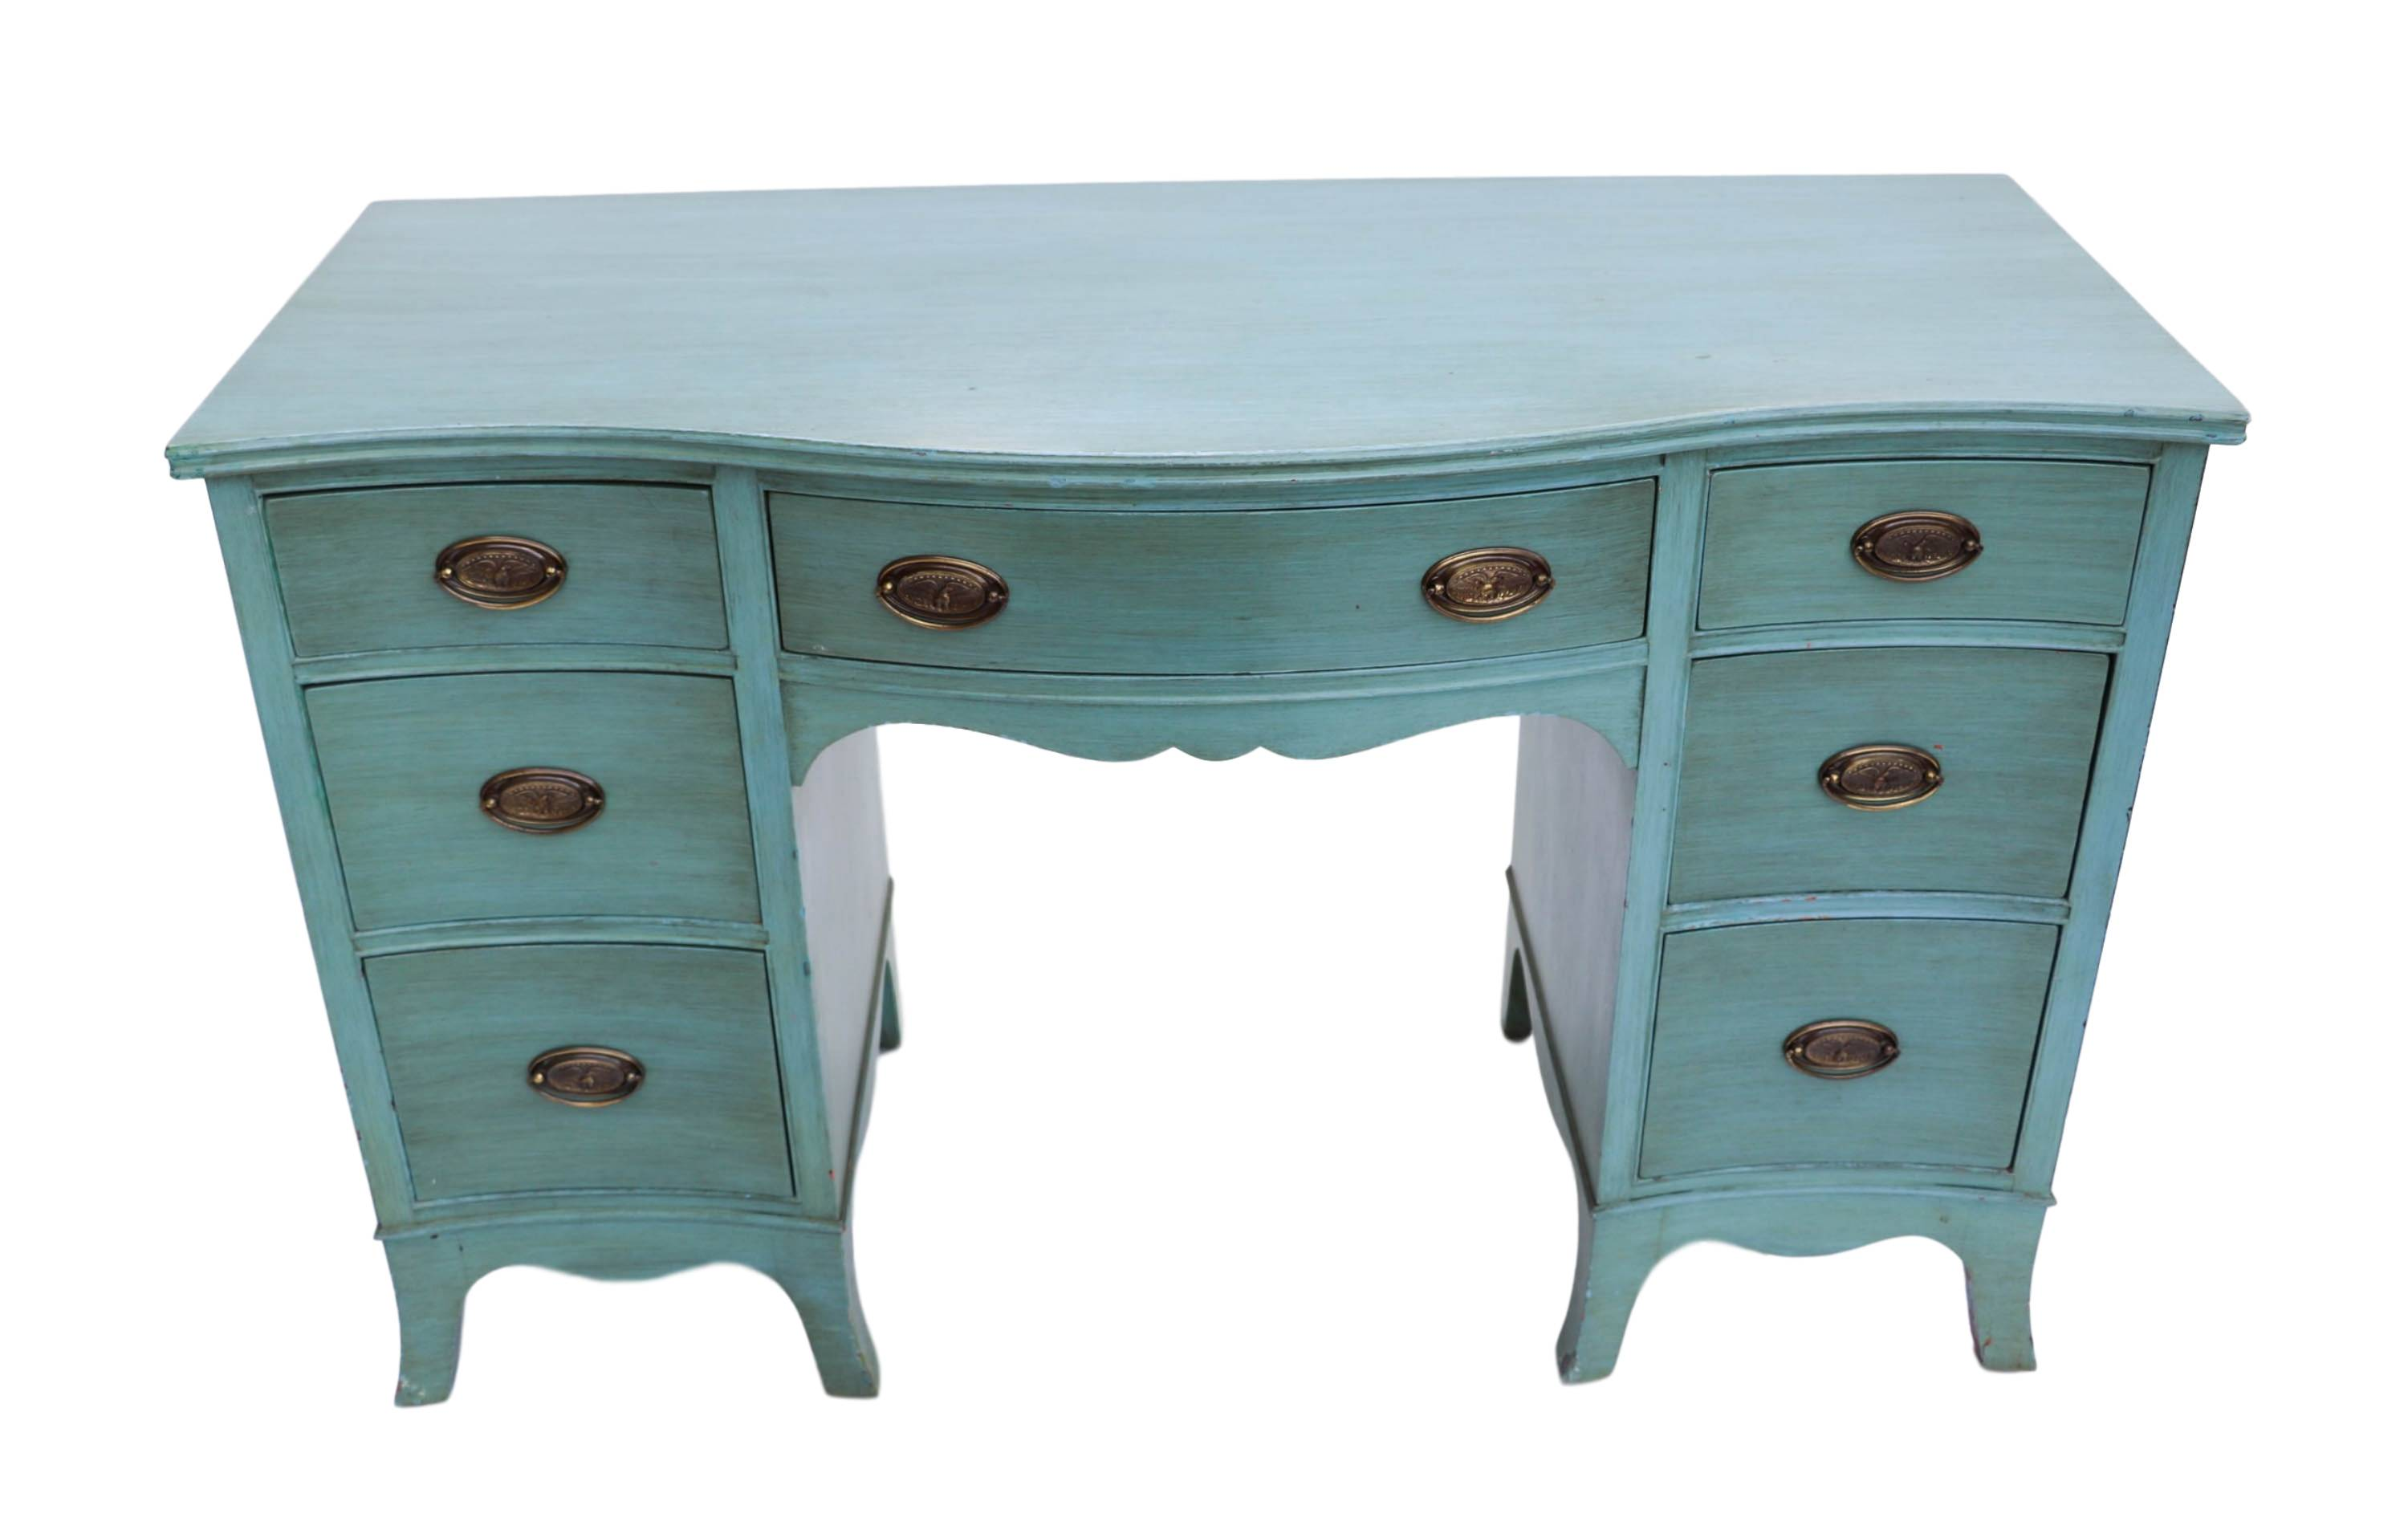 Beautiful Vintage Turquoise Painted Desk Vanity Danish Mid Century